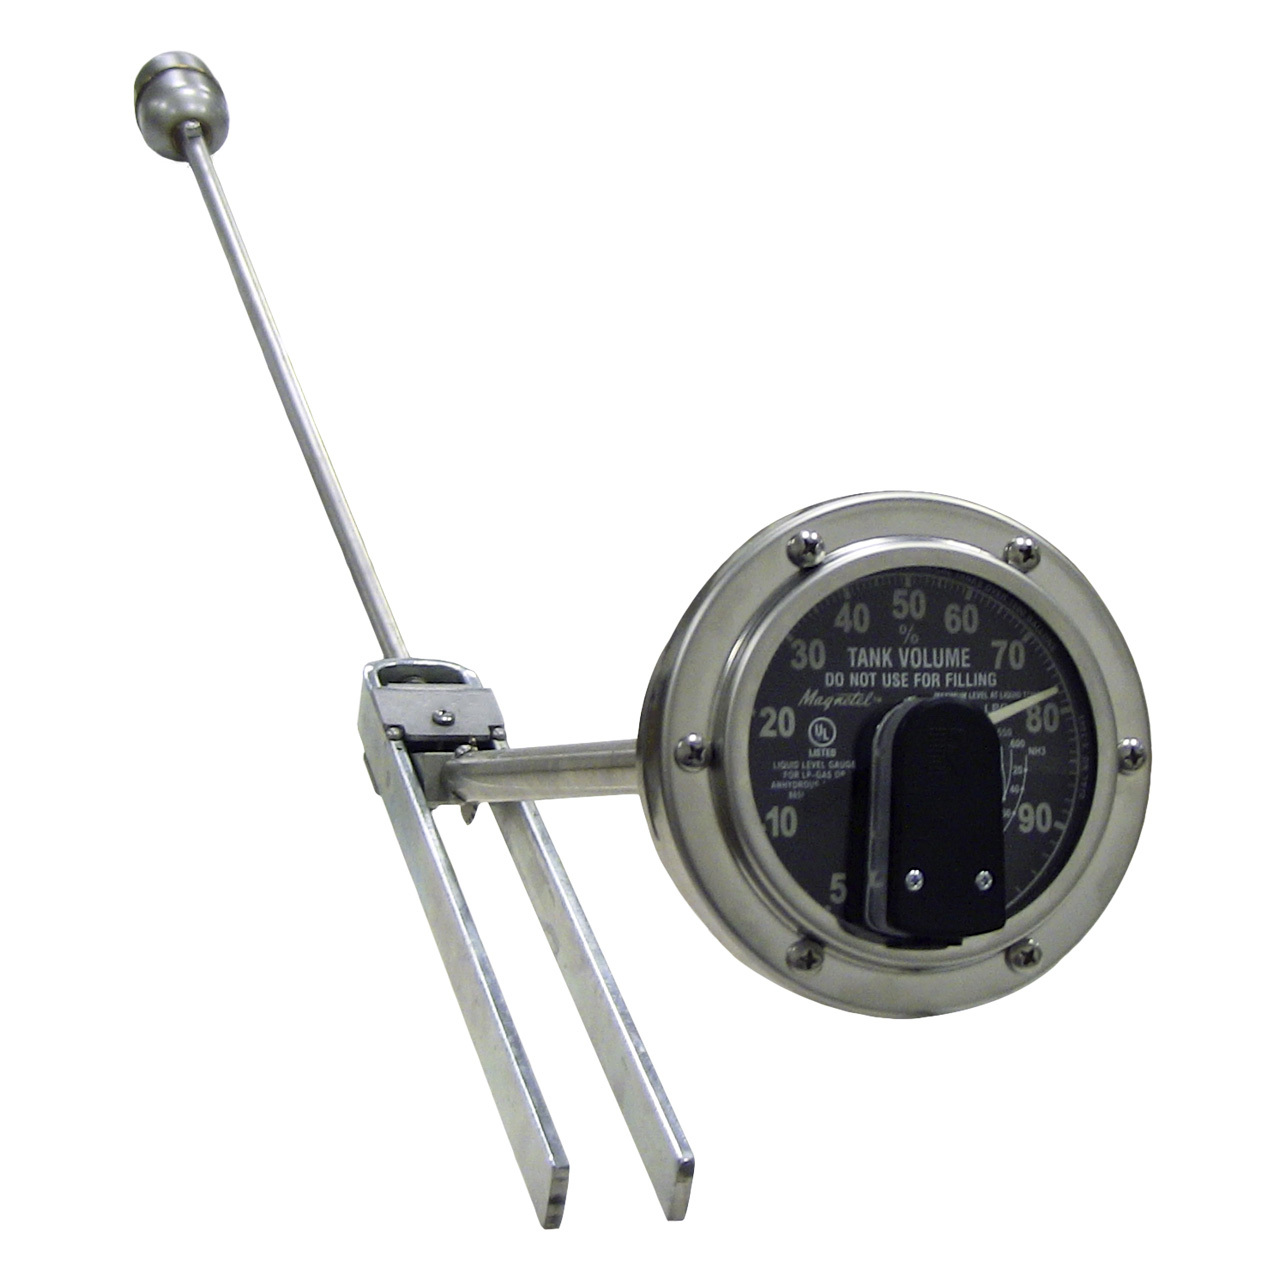 Liquid Level Gauges For Tanks Tank Gauge Morrison Bros Switches Information Engineering360 Rochester M6300 Series 4 In Magnetel Rough Rider